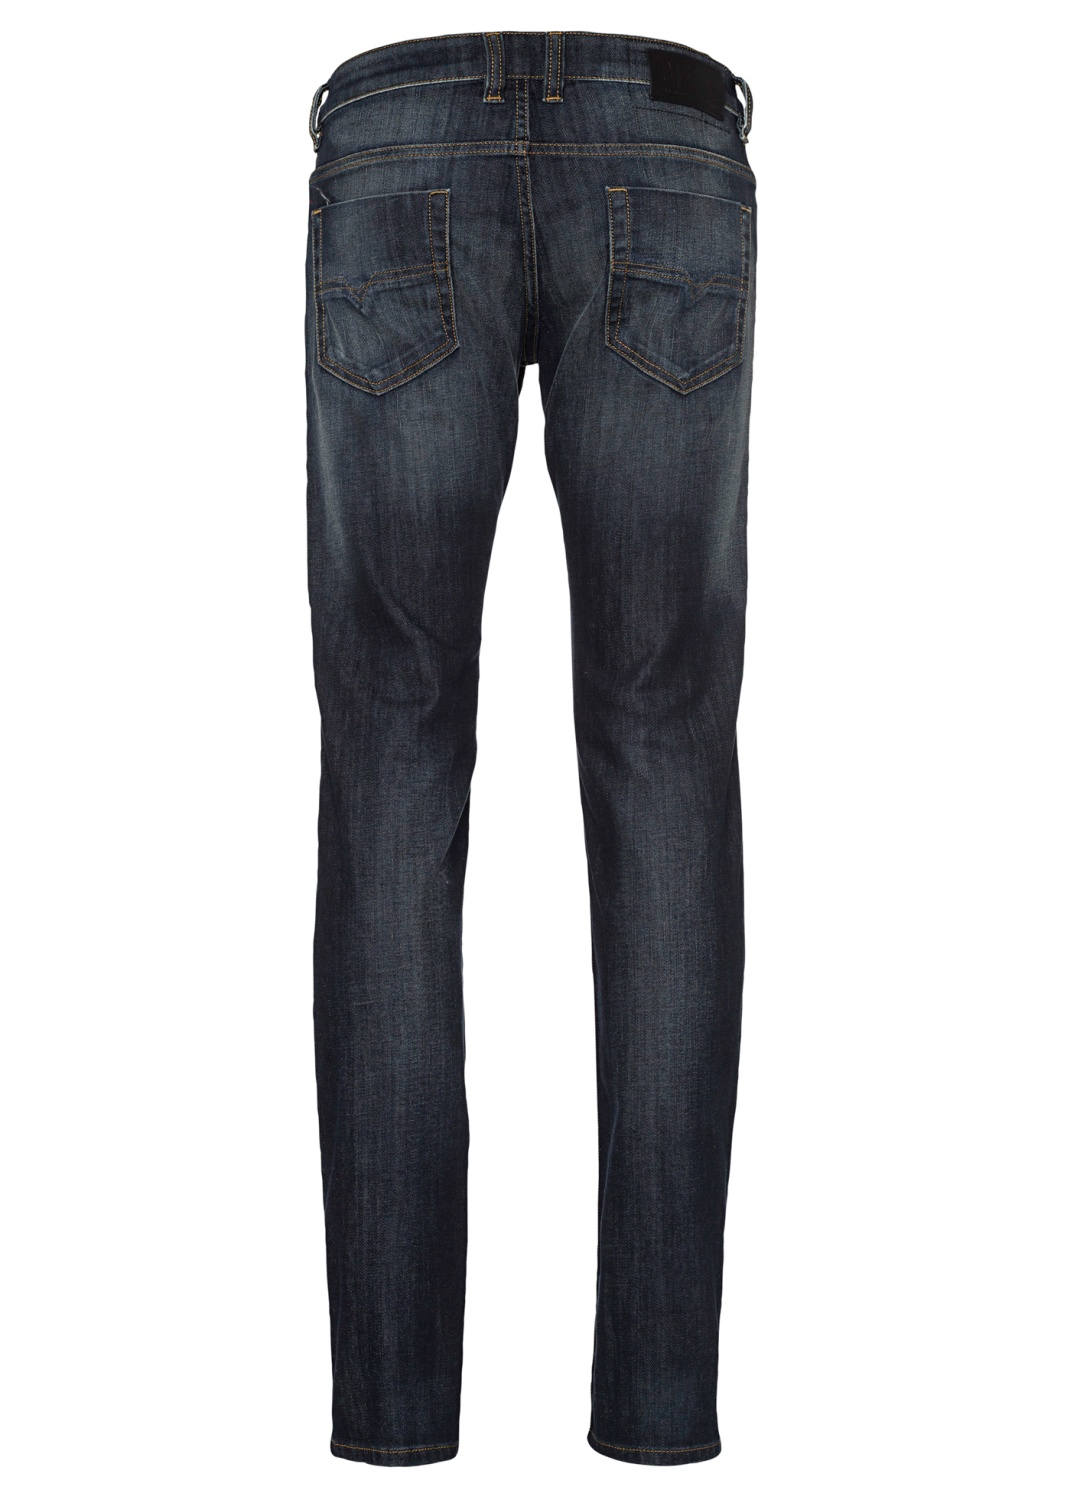 SAFADO-X L.34 TROUSERS image number 1